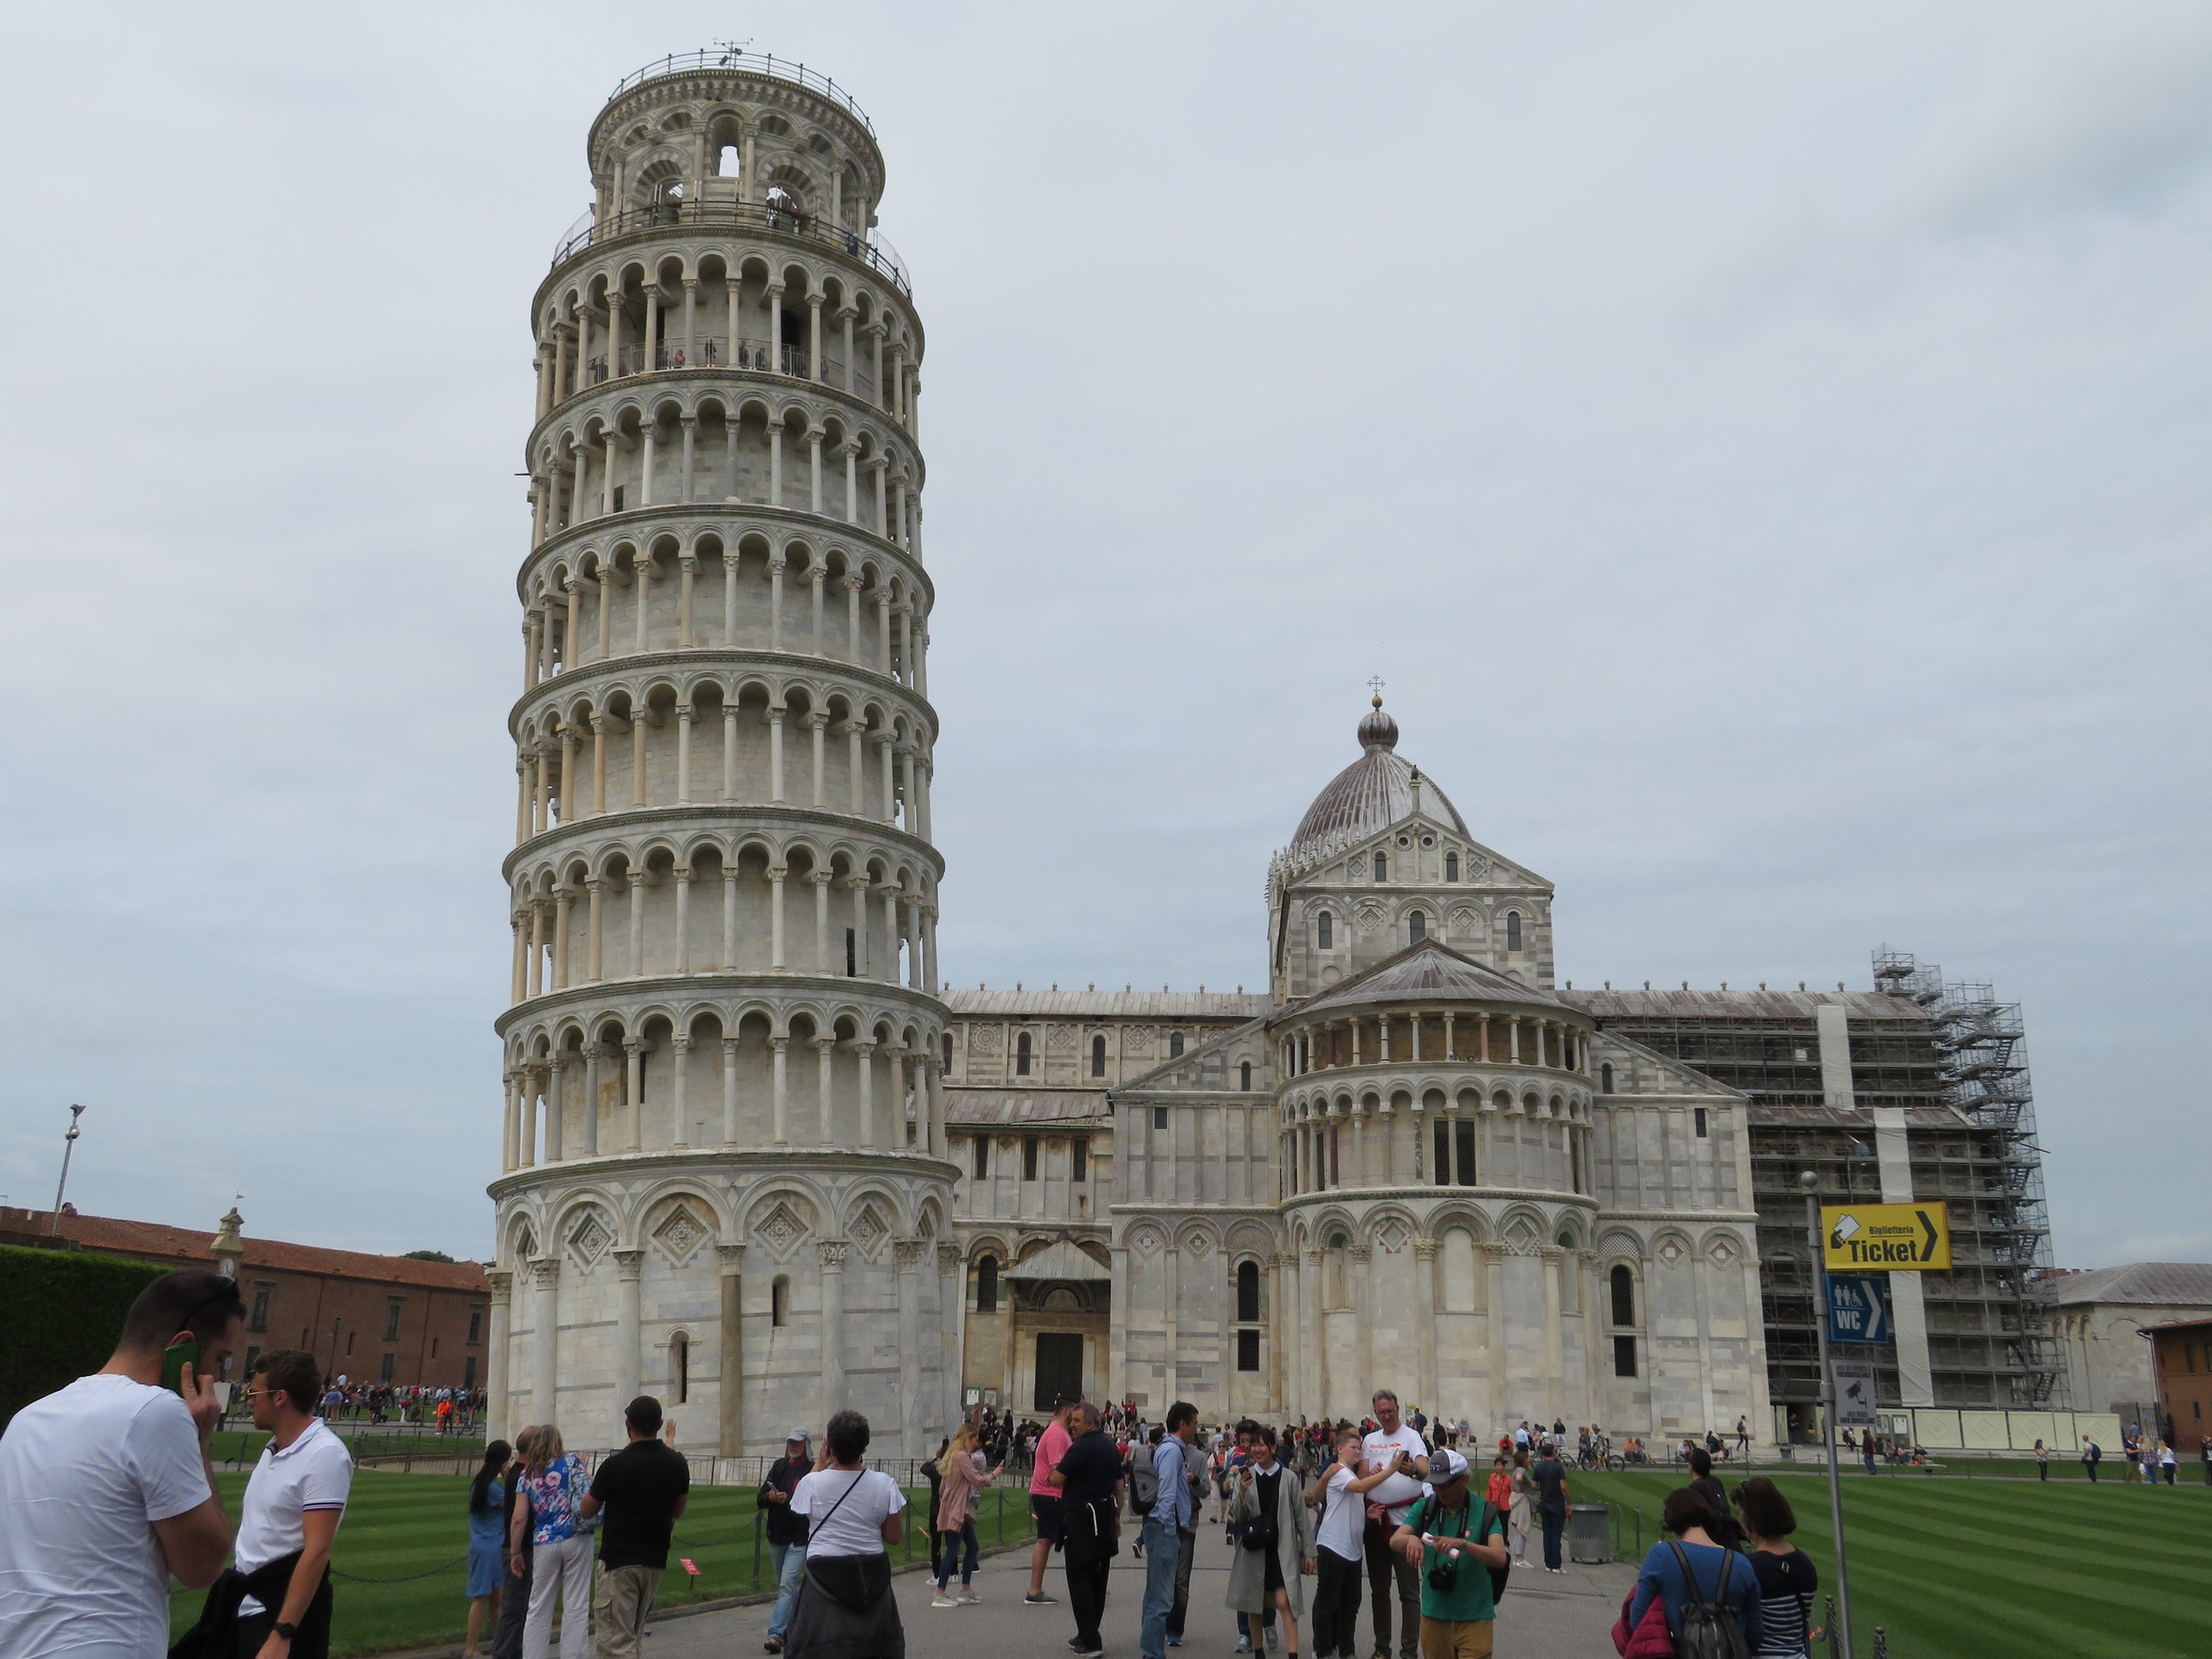 pisa_tower and duomo.JPG